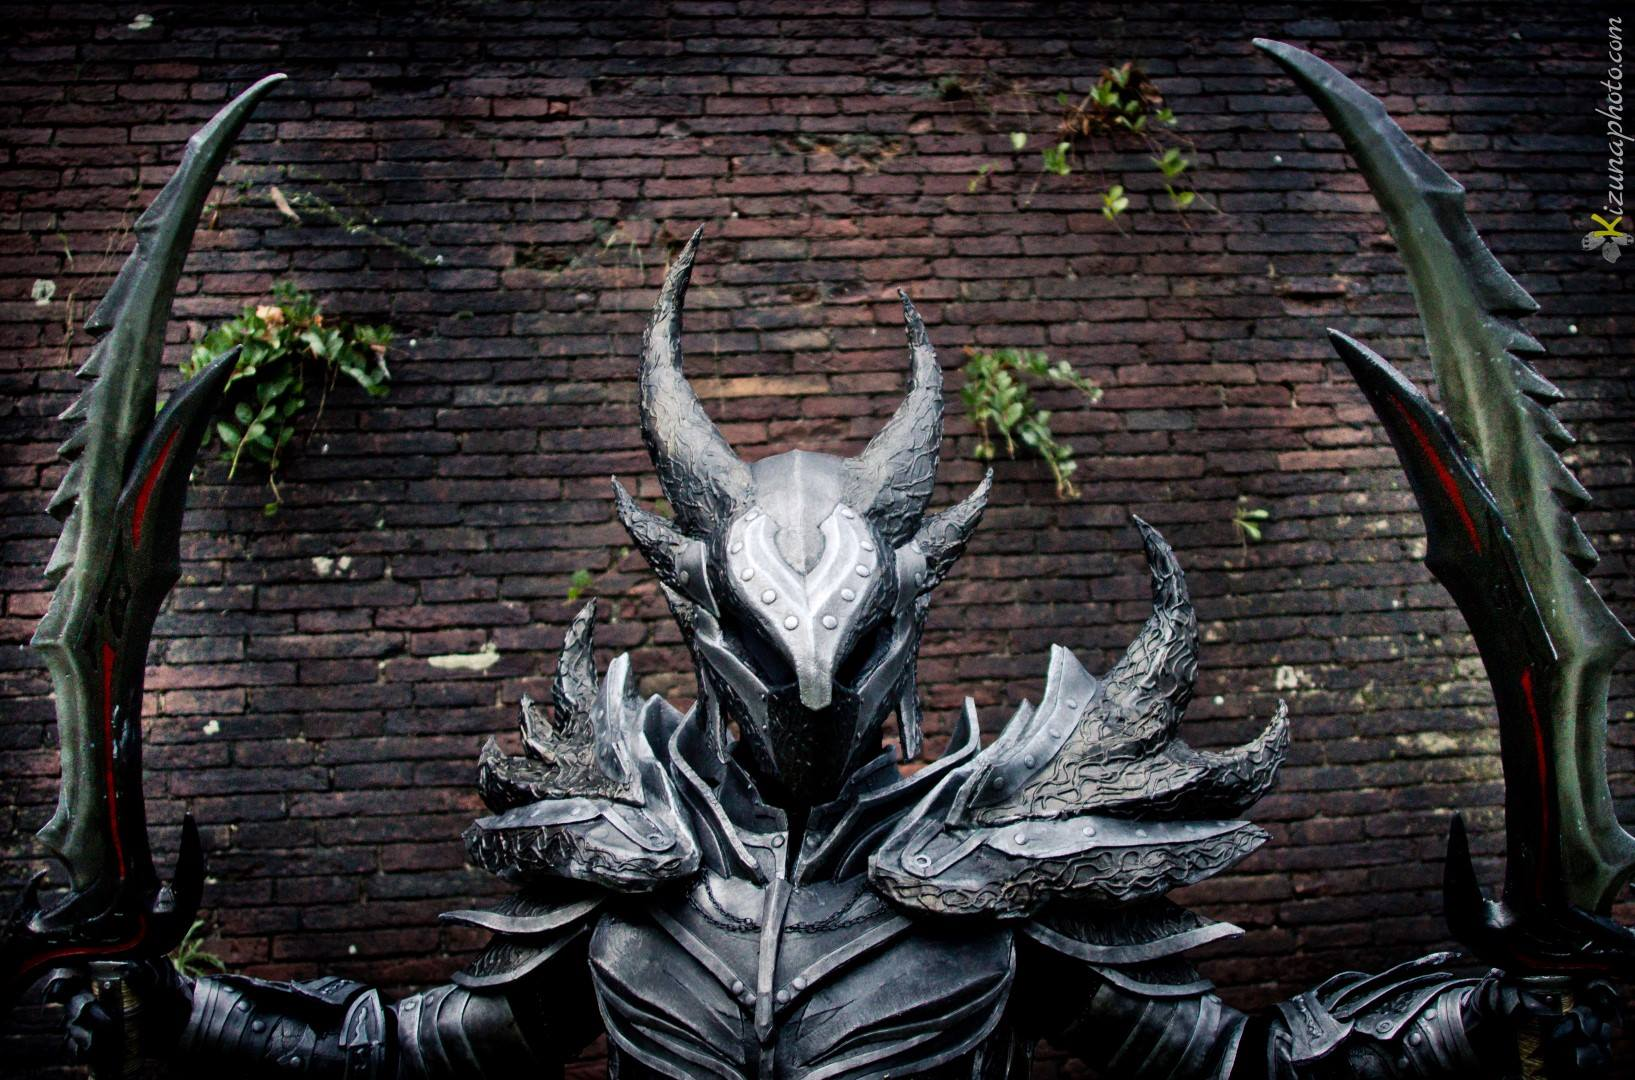 Daedric Armor from Skyrim Cosplay by Zerios88